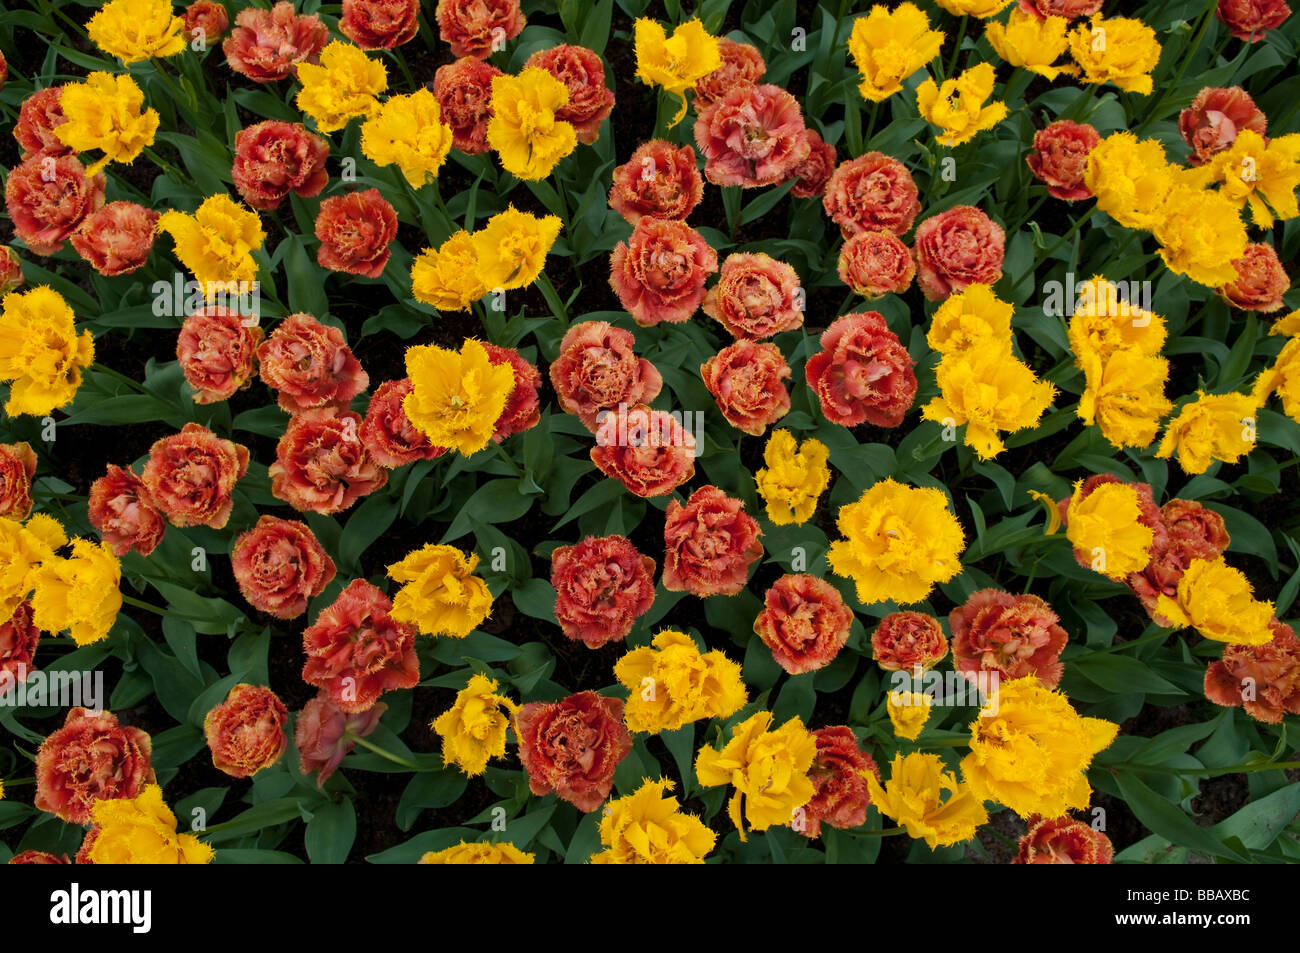 Red and yellow tulips with ragged petal edges - Stock Image